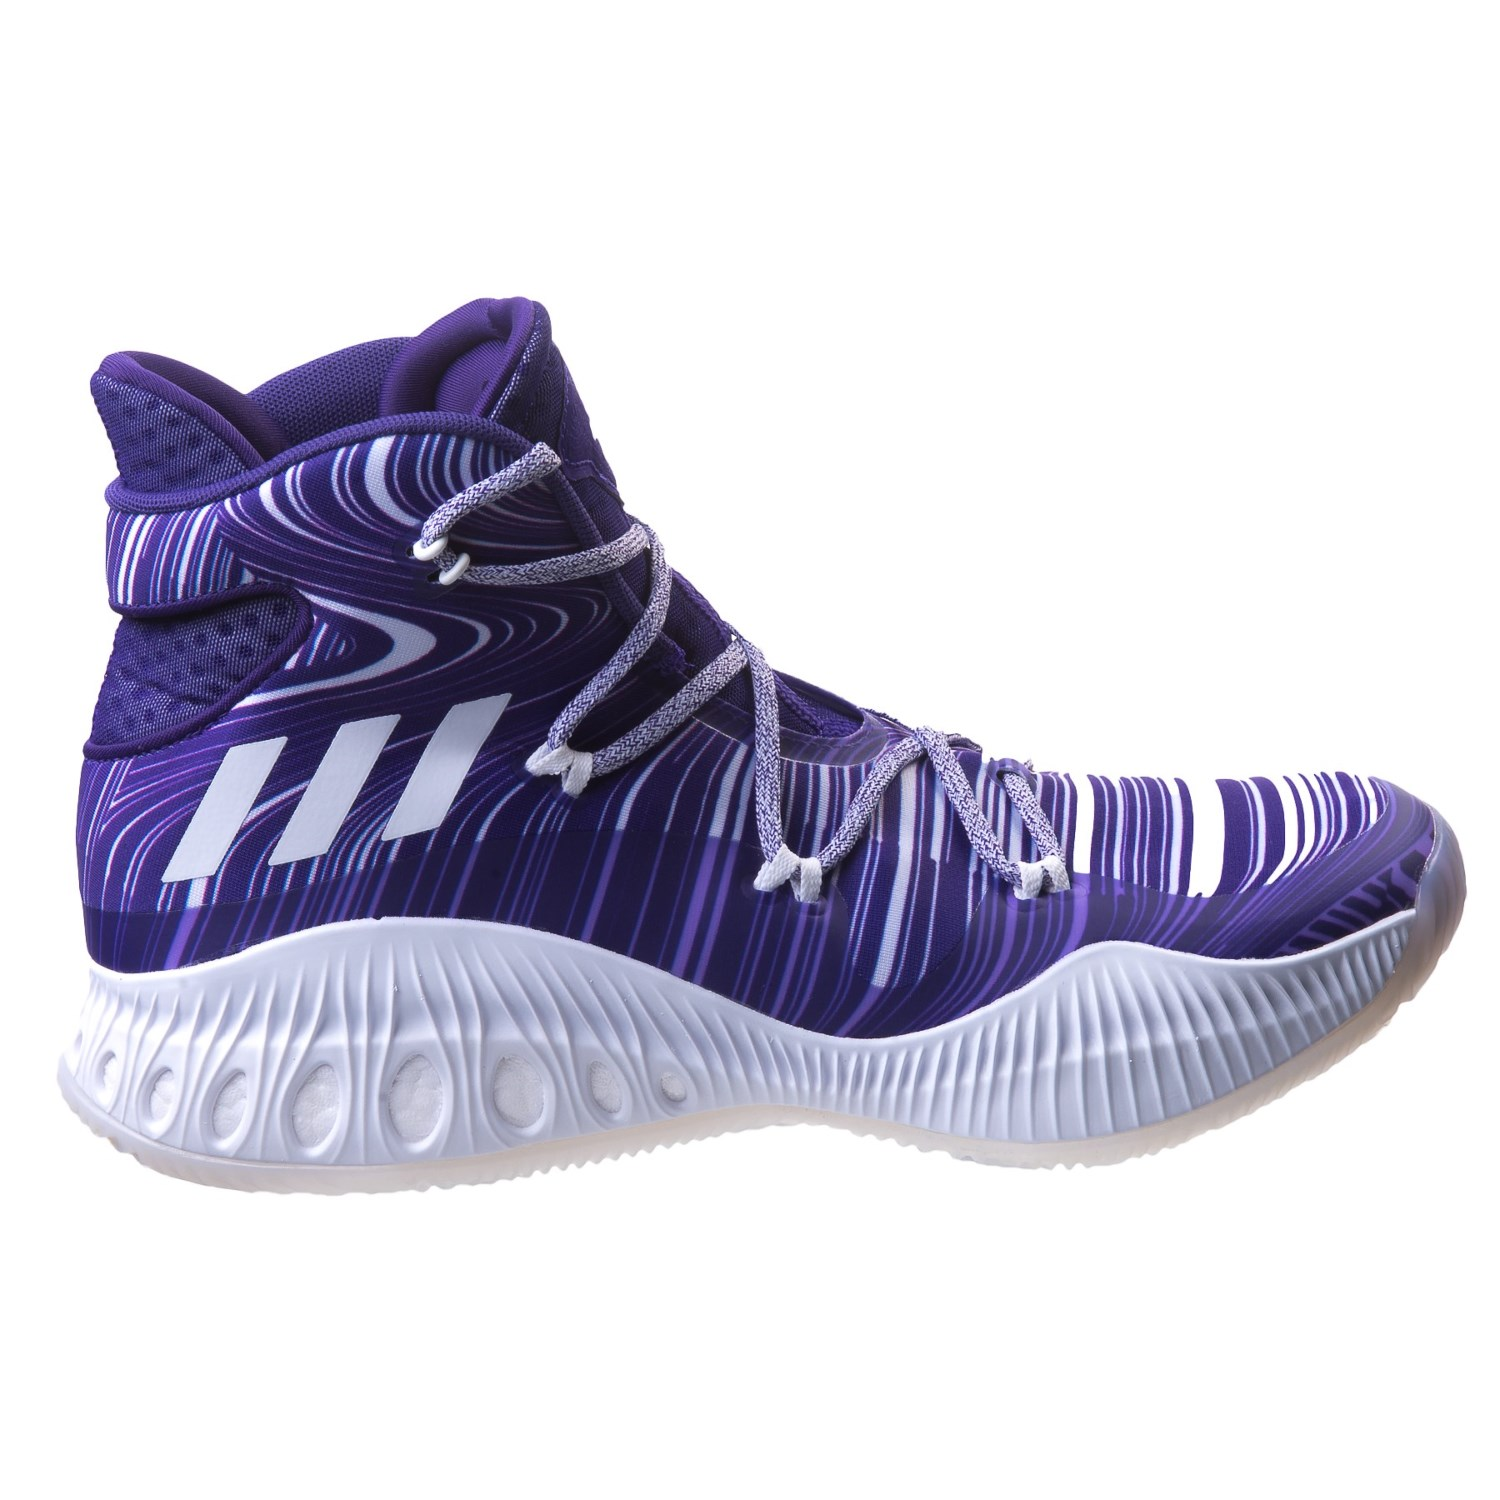 d9c0fb84e6cd7 adidas SM Crazy Explosive NBA Shoes (For Men) - Save 85%